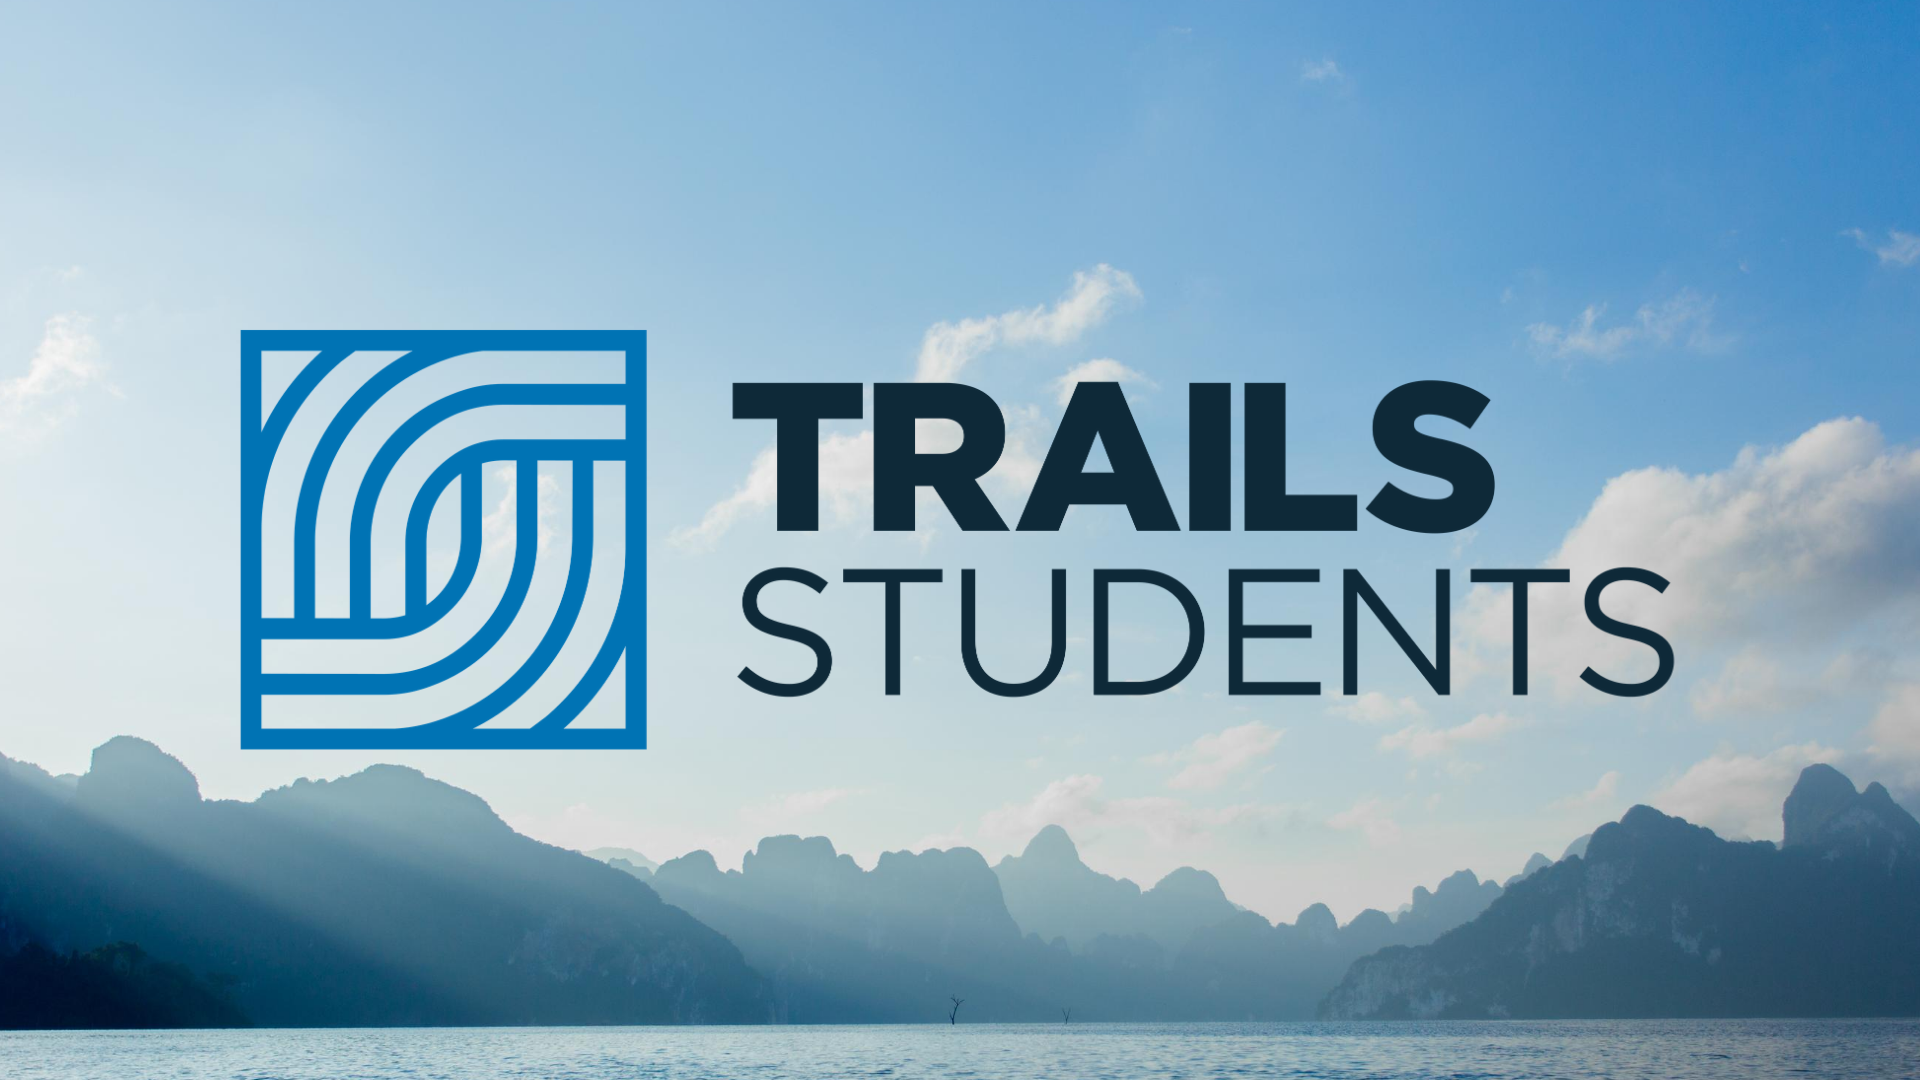 Trails Students Spring 2021 image